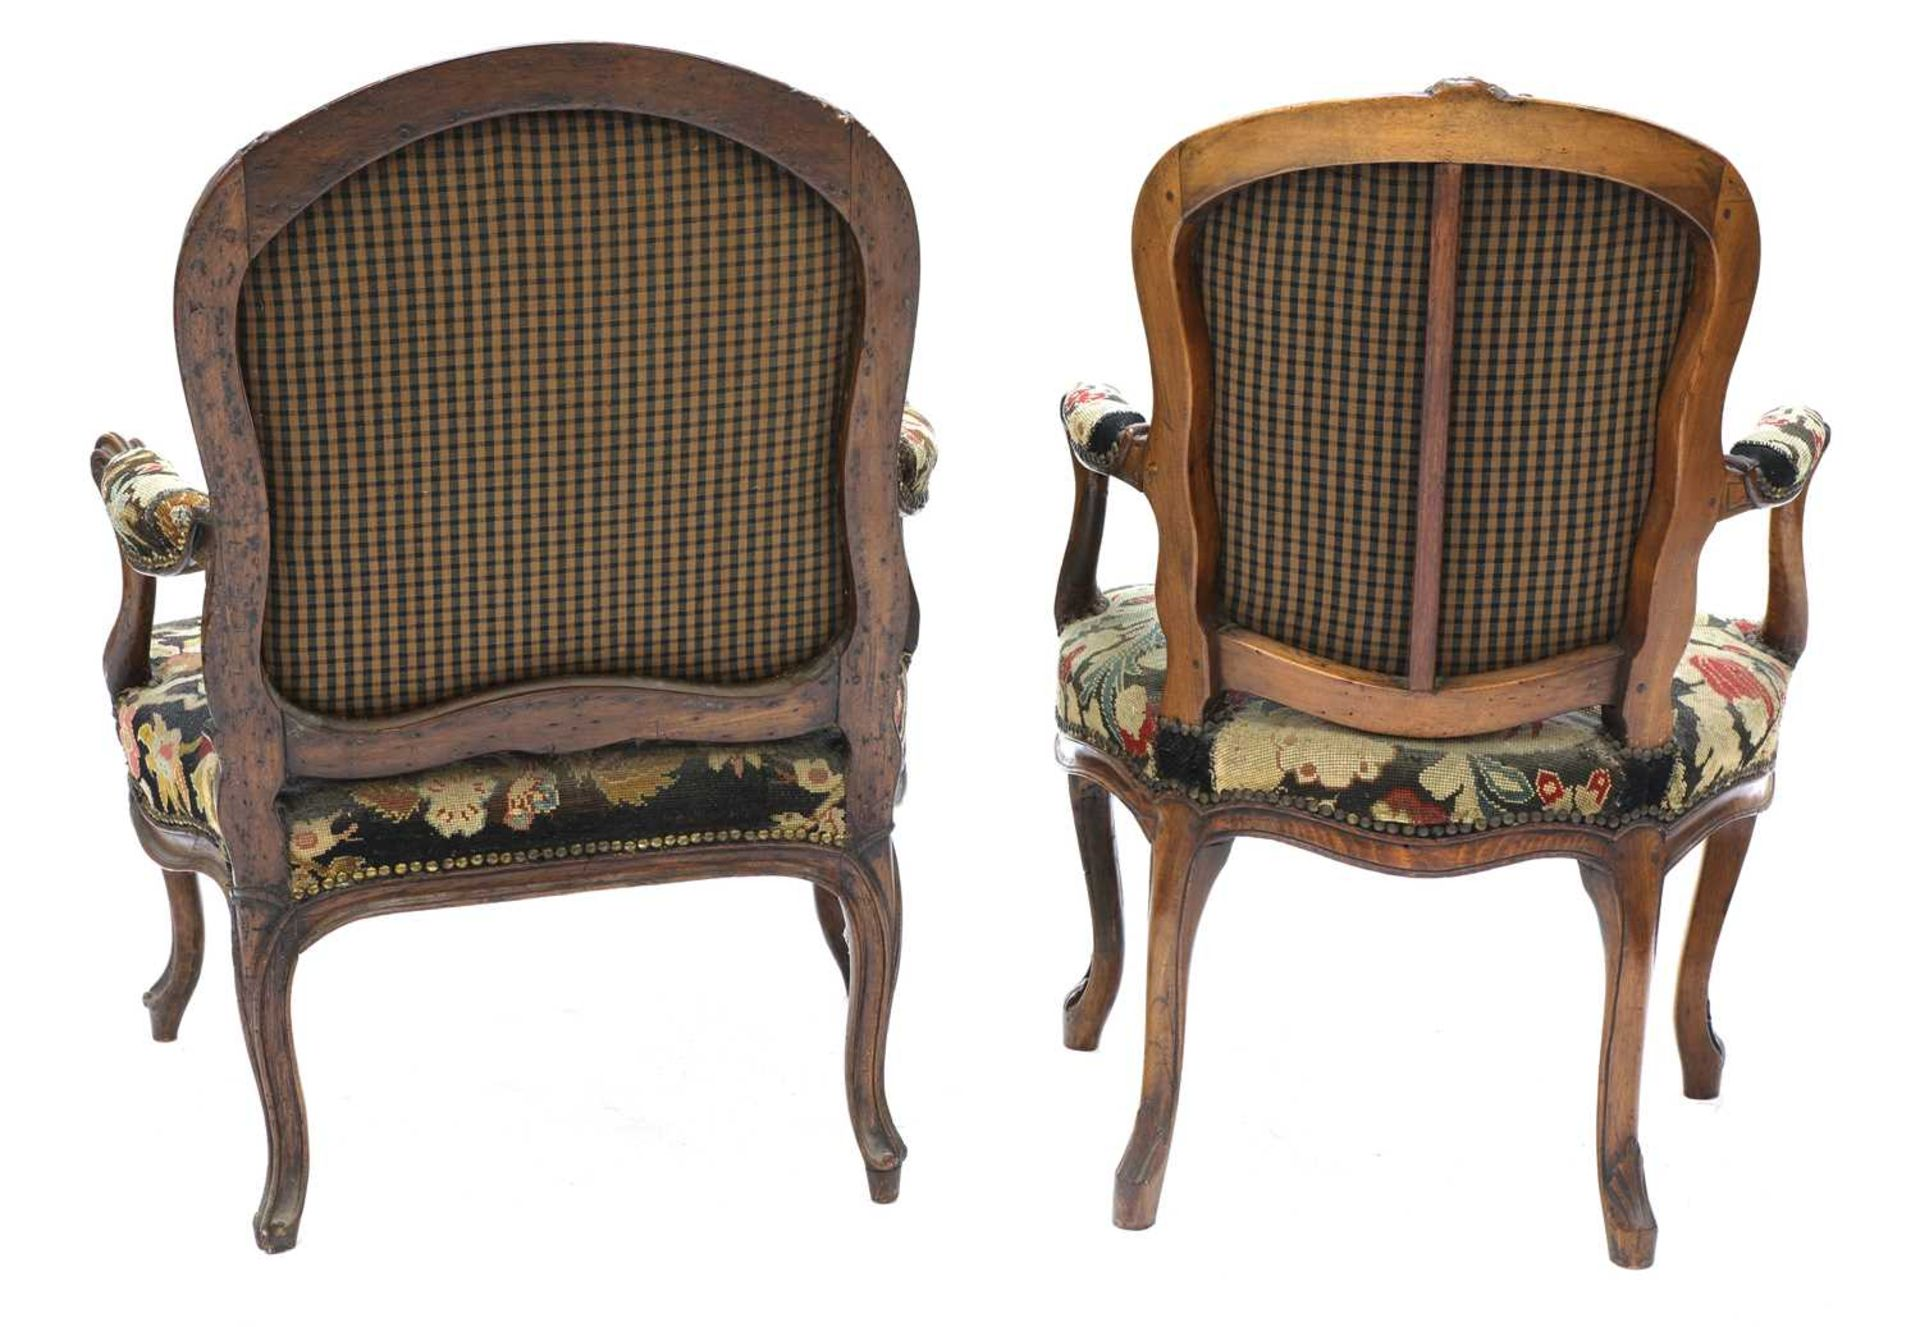 A French walnut-framed armchair, - Image 3 of 4